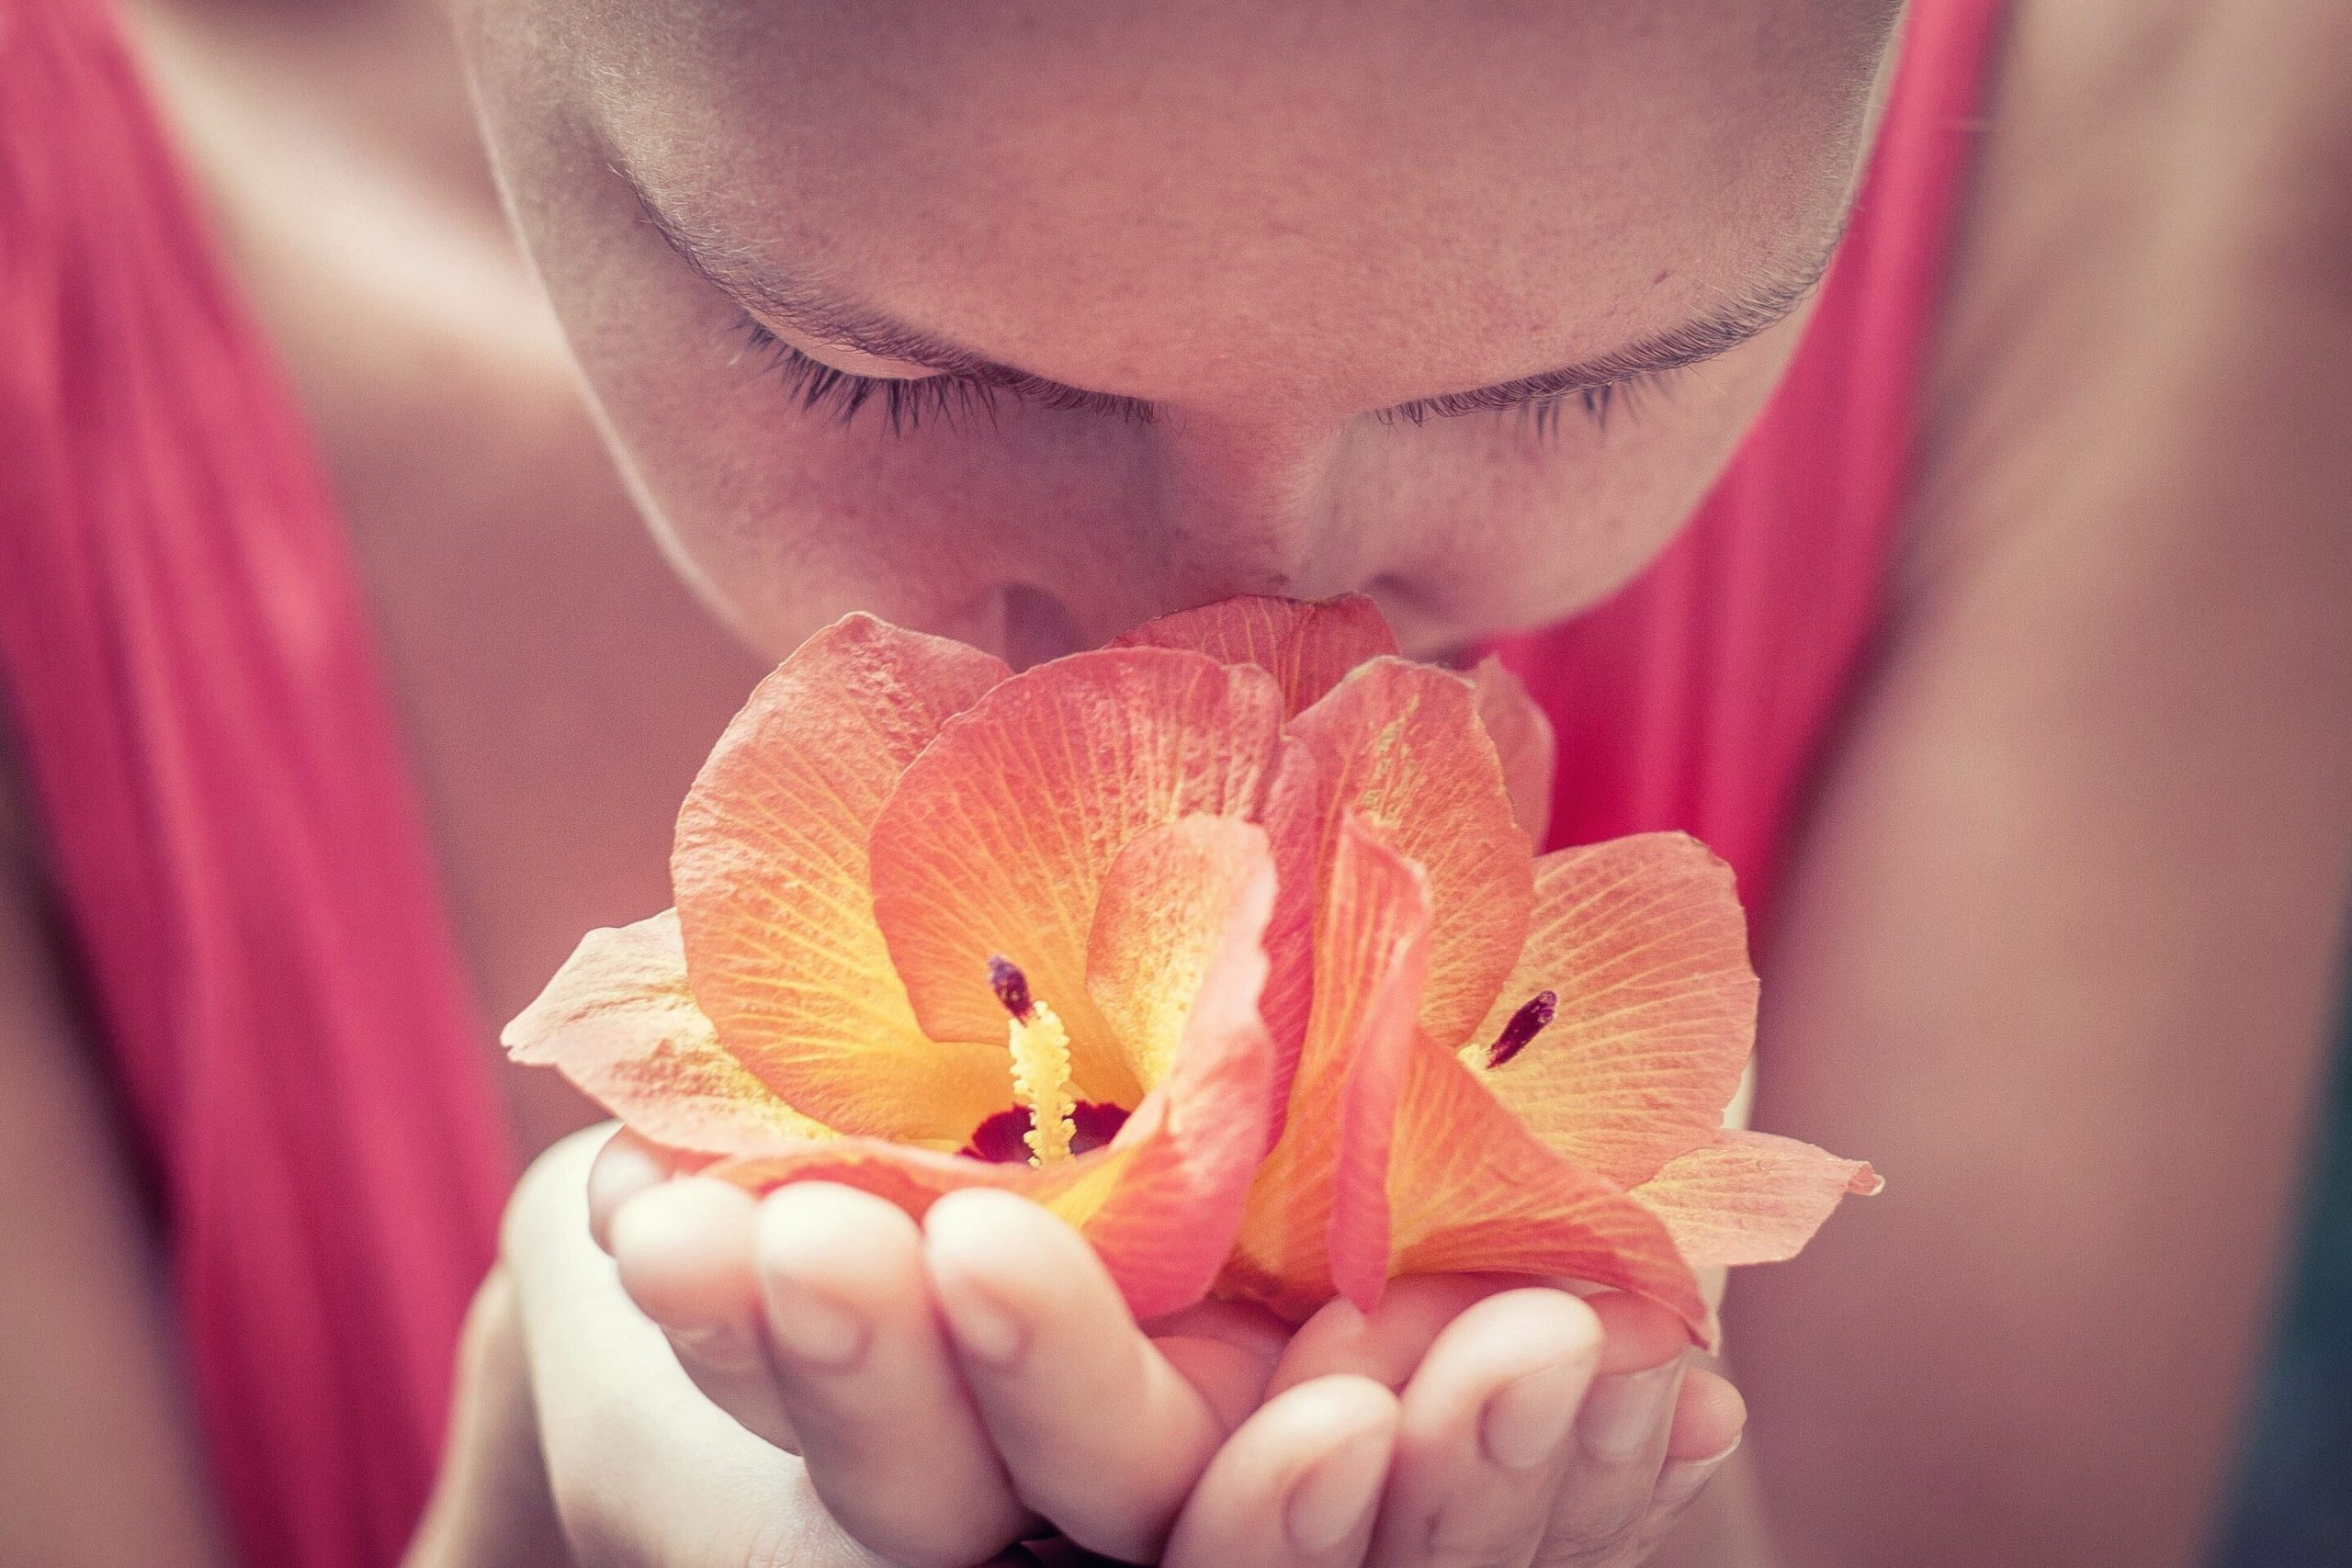 Since COVID, increased concern over smell loss is prompting new research | California News Times